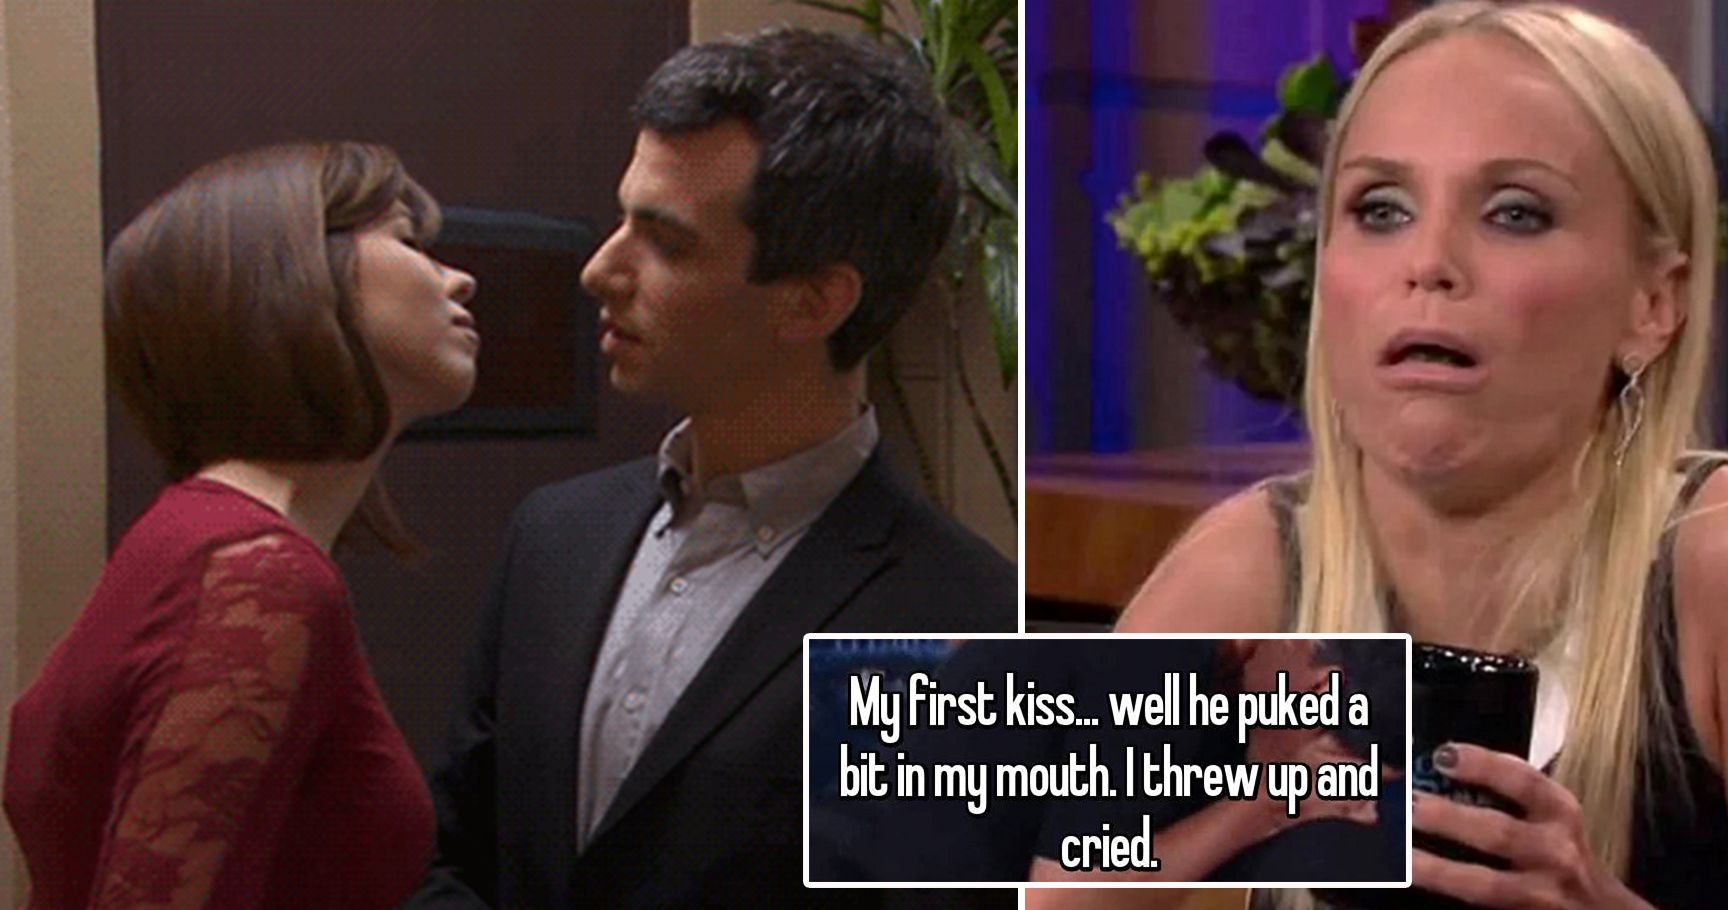 The 15 Worst Kiss Confessions These People Want To Forget